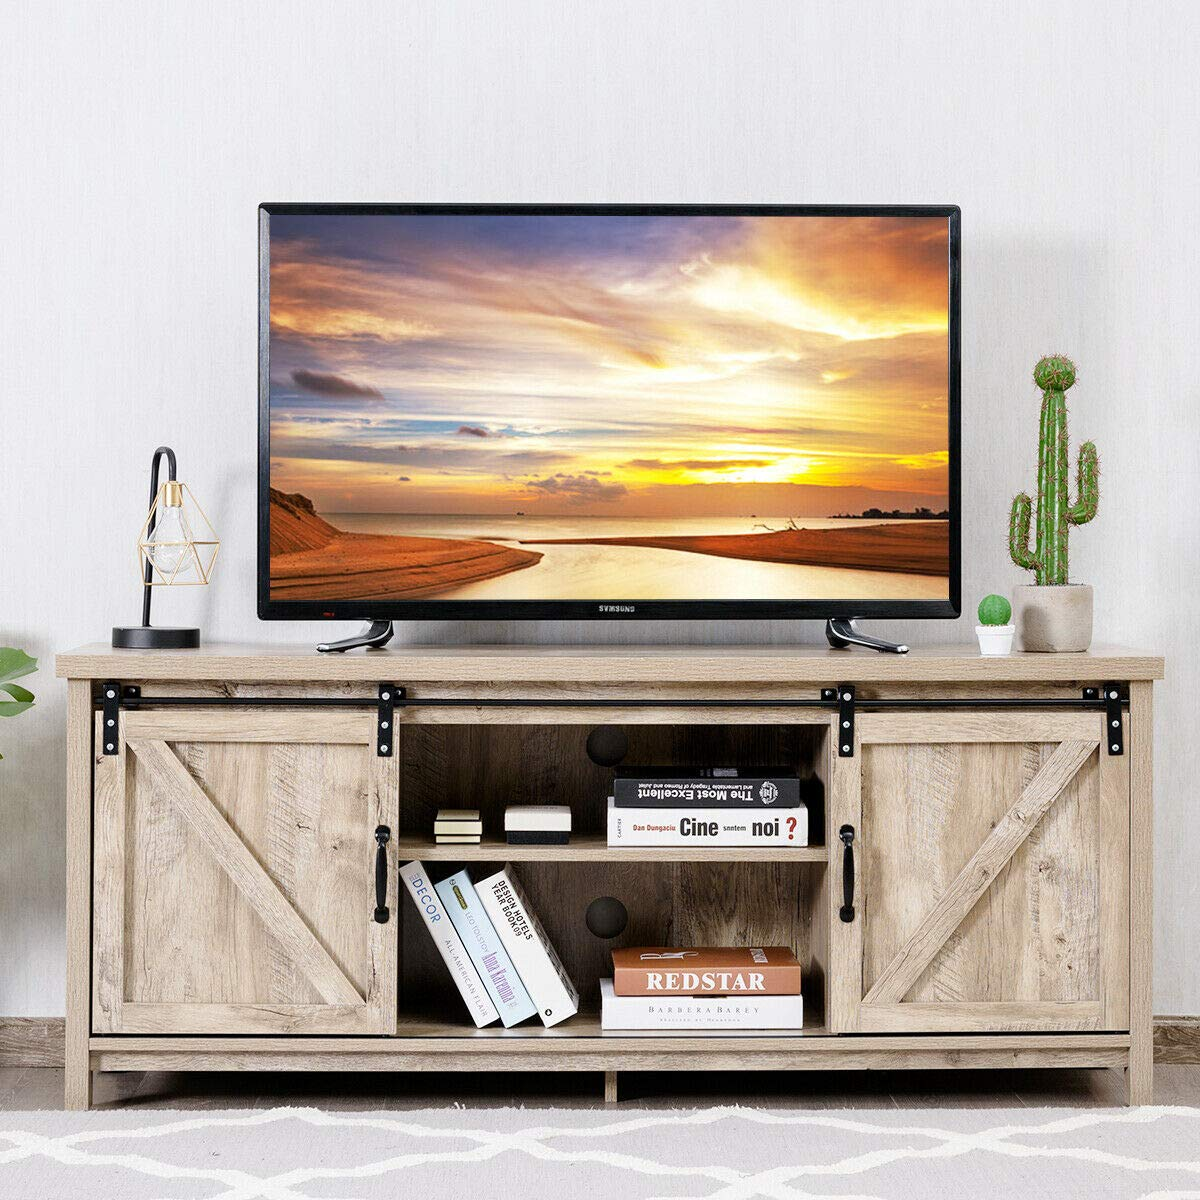 Tangkula TV Stand for 60'' Television, TV Ark with Sliding Barn Doors, Wooden TV Cabinet with 2 Center Compartments and 2 Cabinets, Console Storage Table with Cabinet, Natural Design (White Oak) by Tangkula